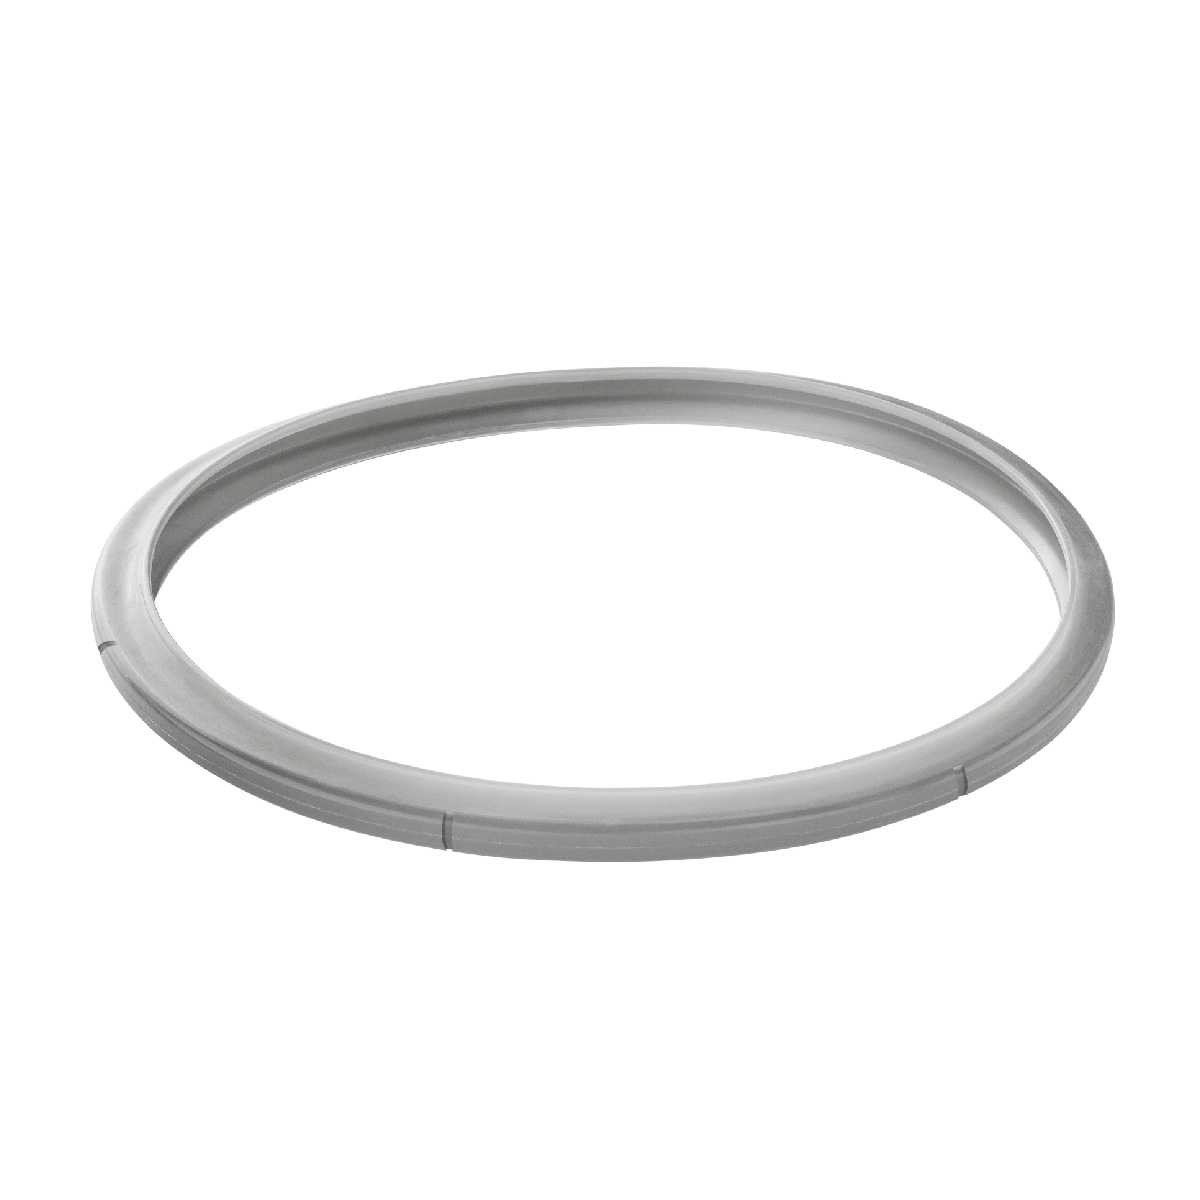 ZWILLING - EcoQuick sealing ring